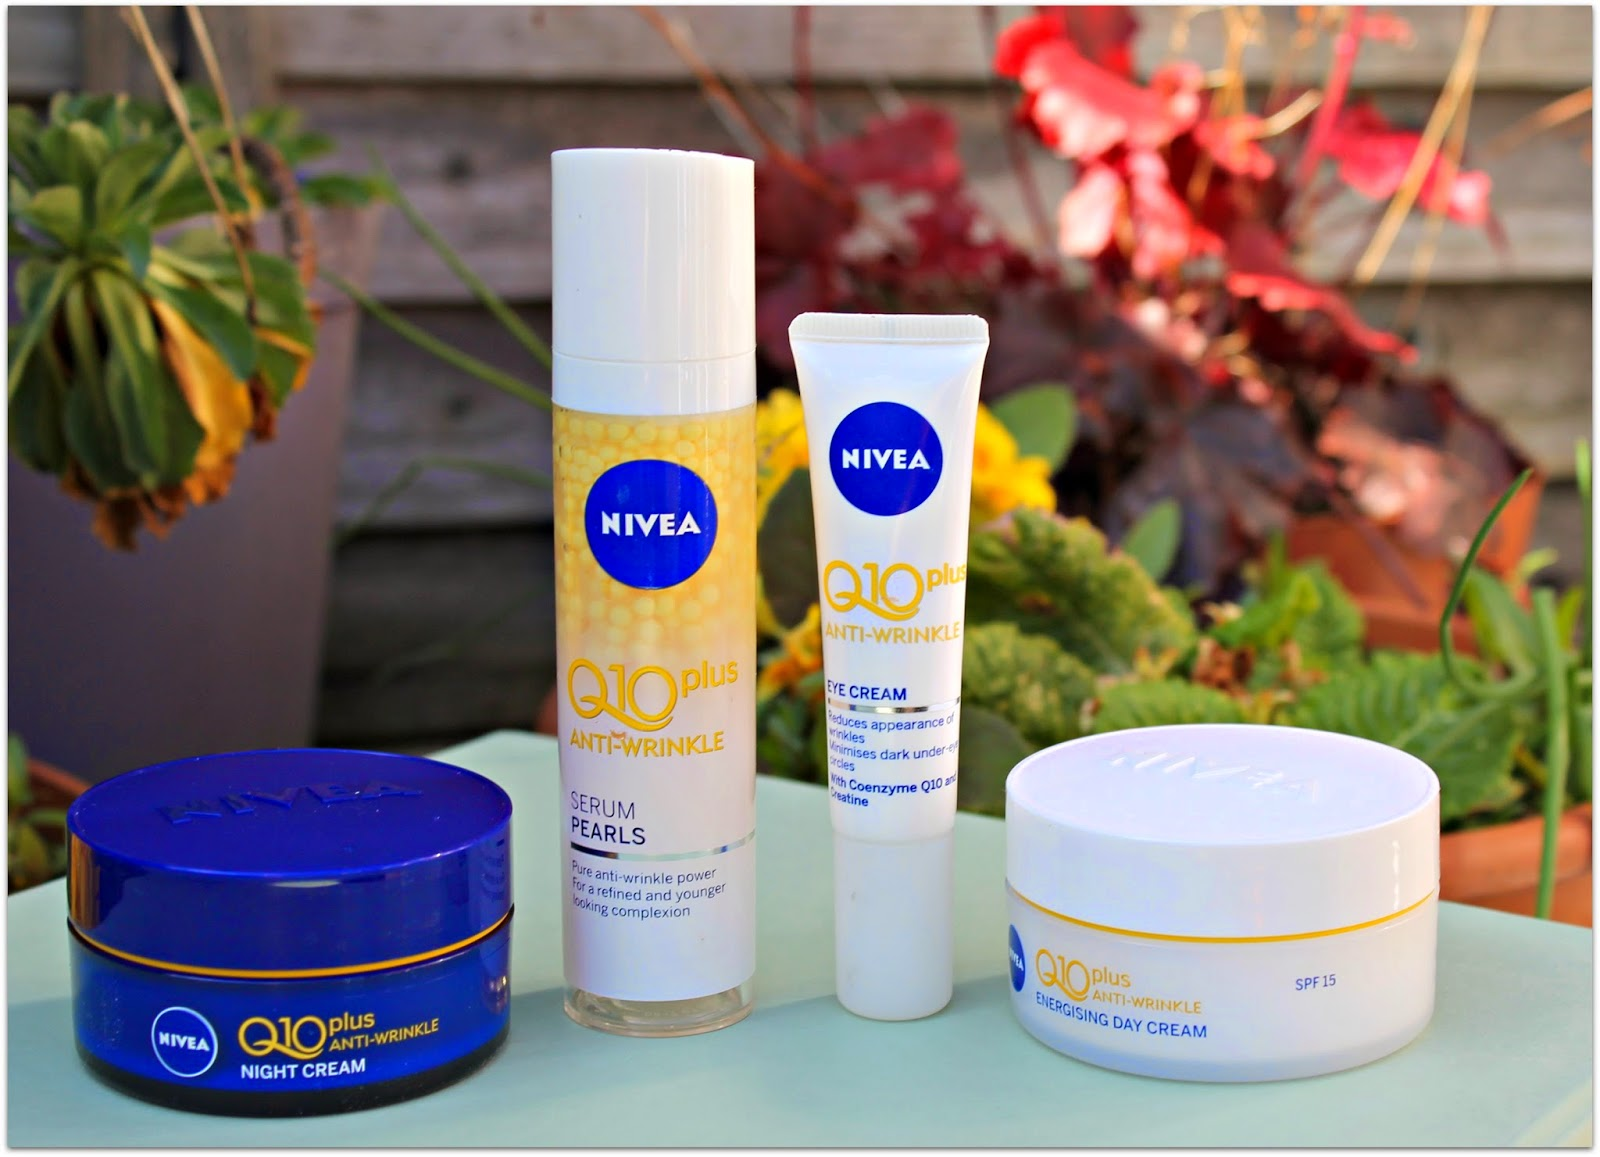 Nivea Q10 plus anti wrinkle range